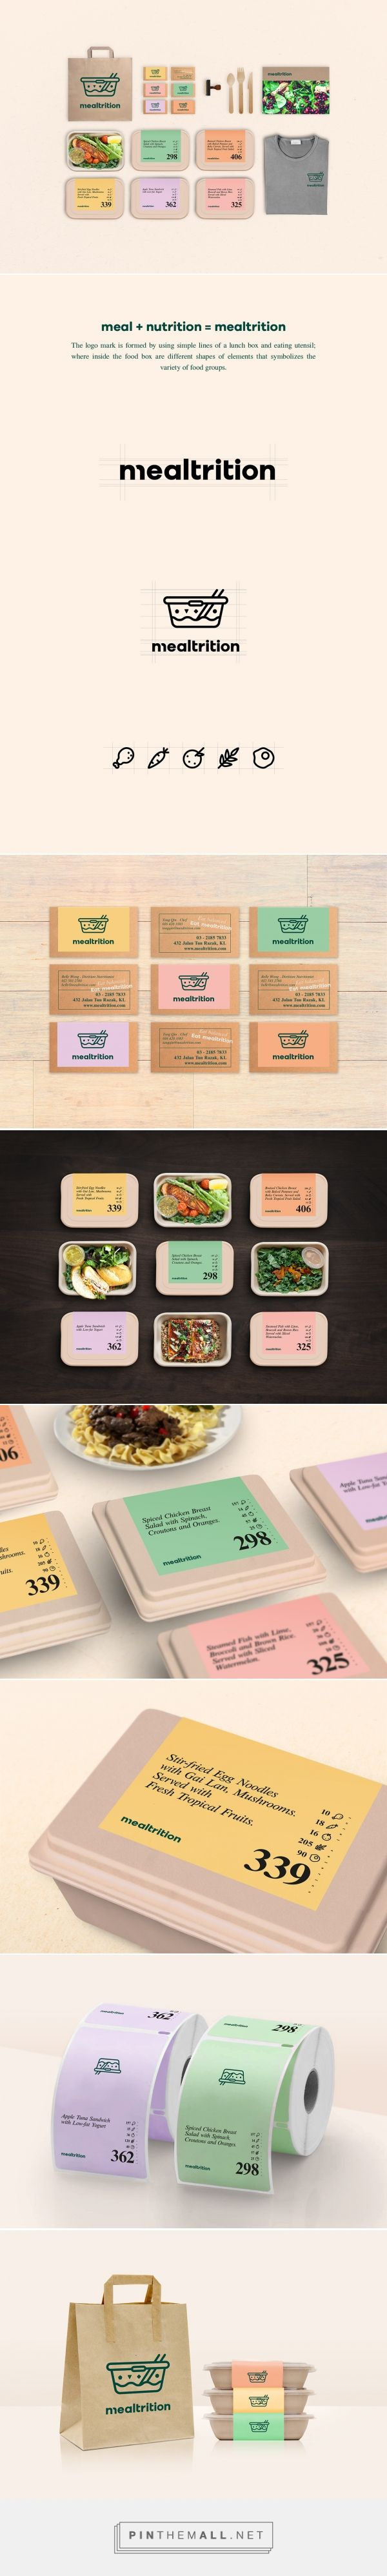 Branding, graphic design and packaging by Mealtrition Food Delivery on Behance by ZiYu Ooi Penang Island, Malaysia curated by Packaging Diva PD. A healthy food delivery service that provides nutritionally balanced and freshly prepared food.